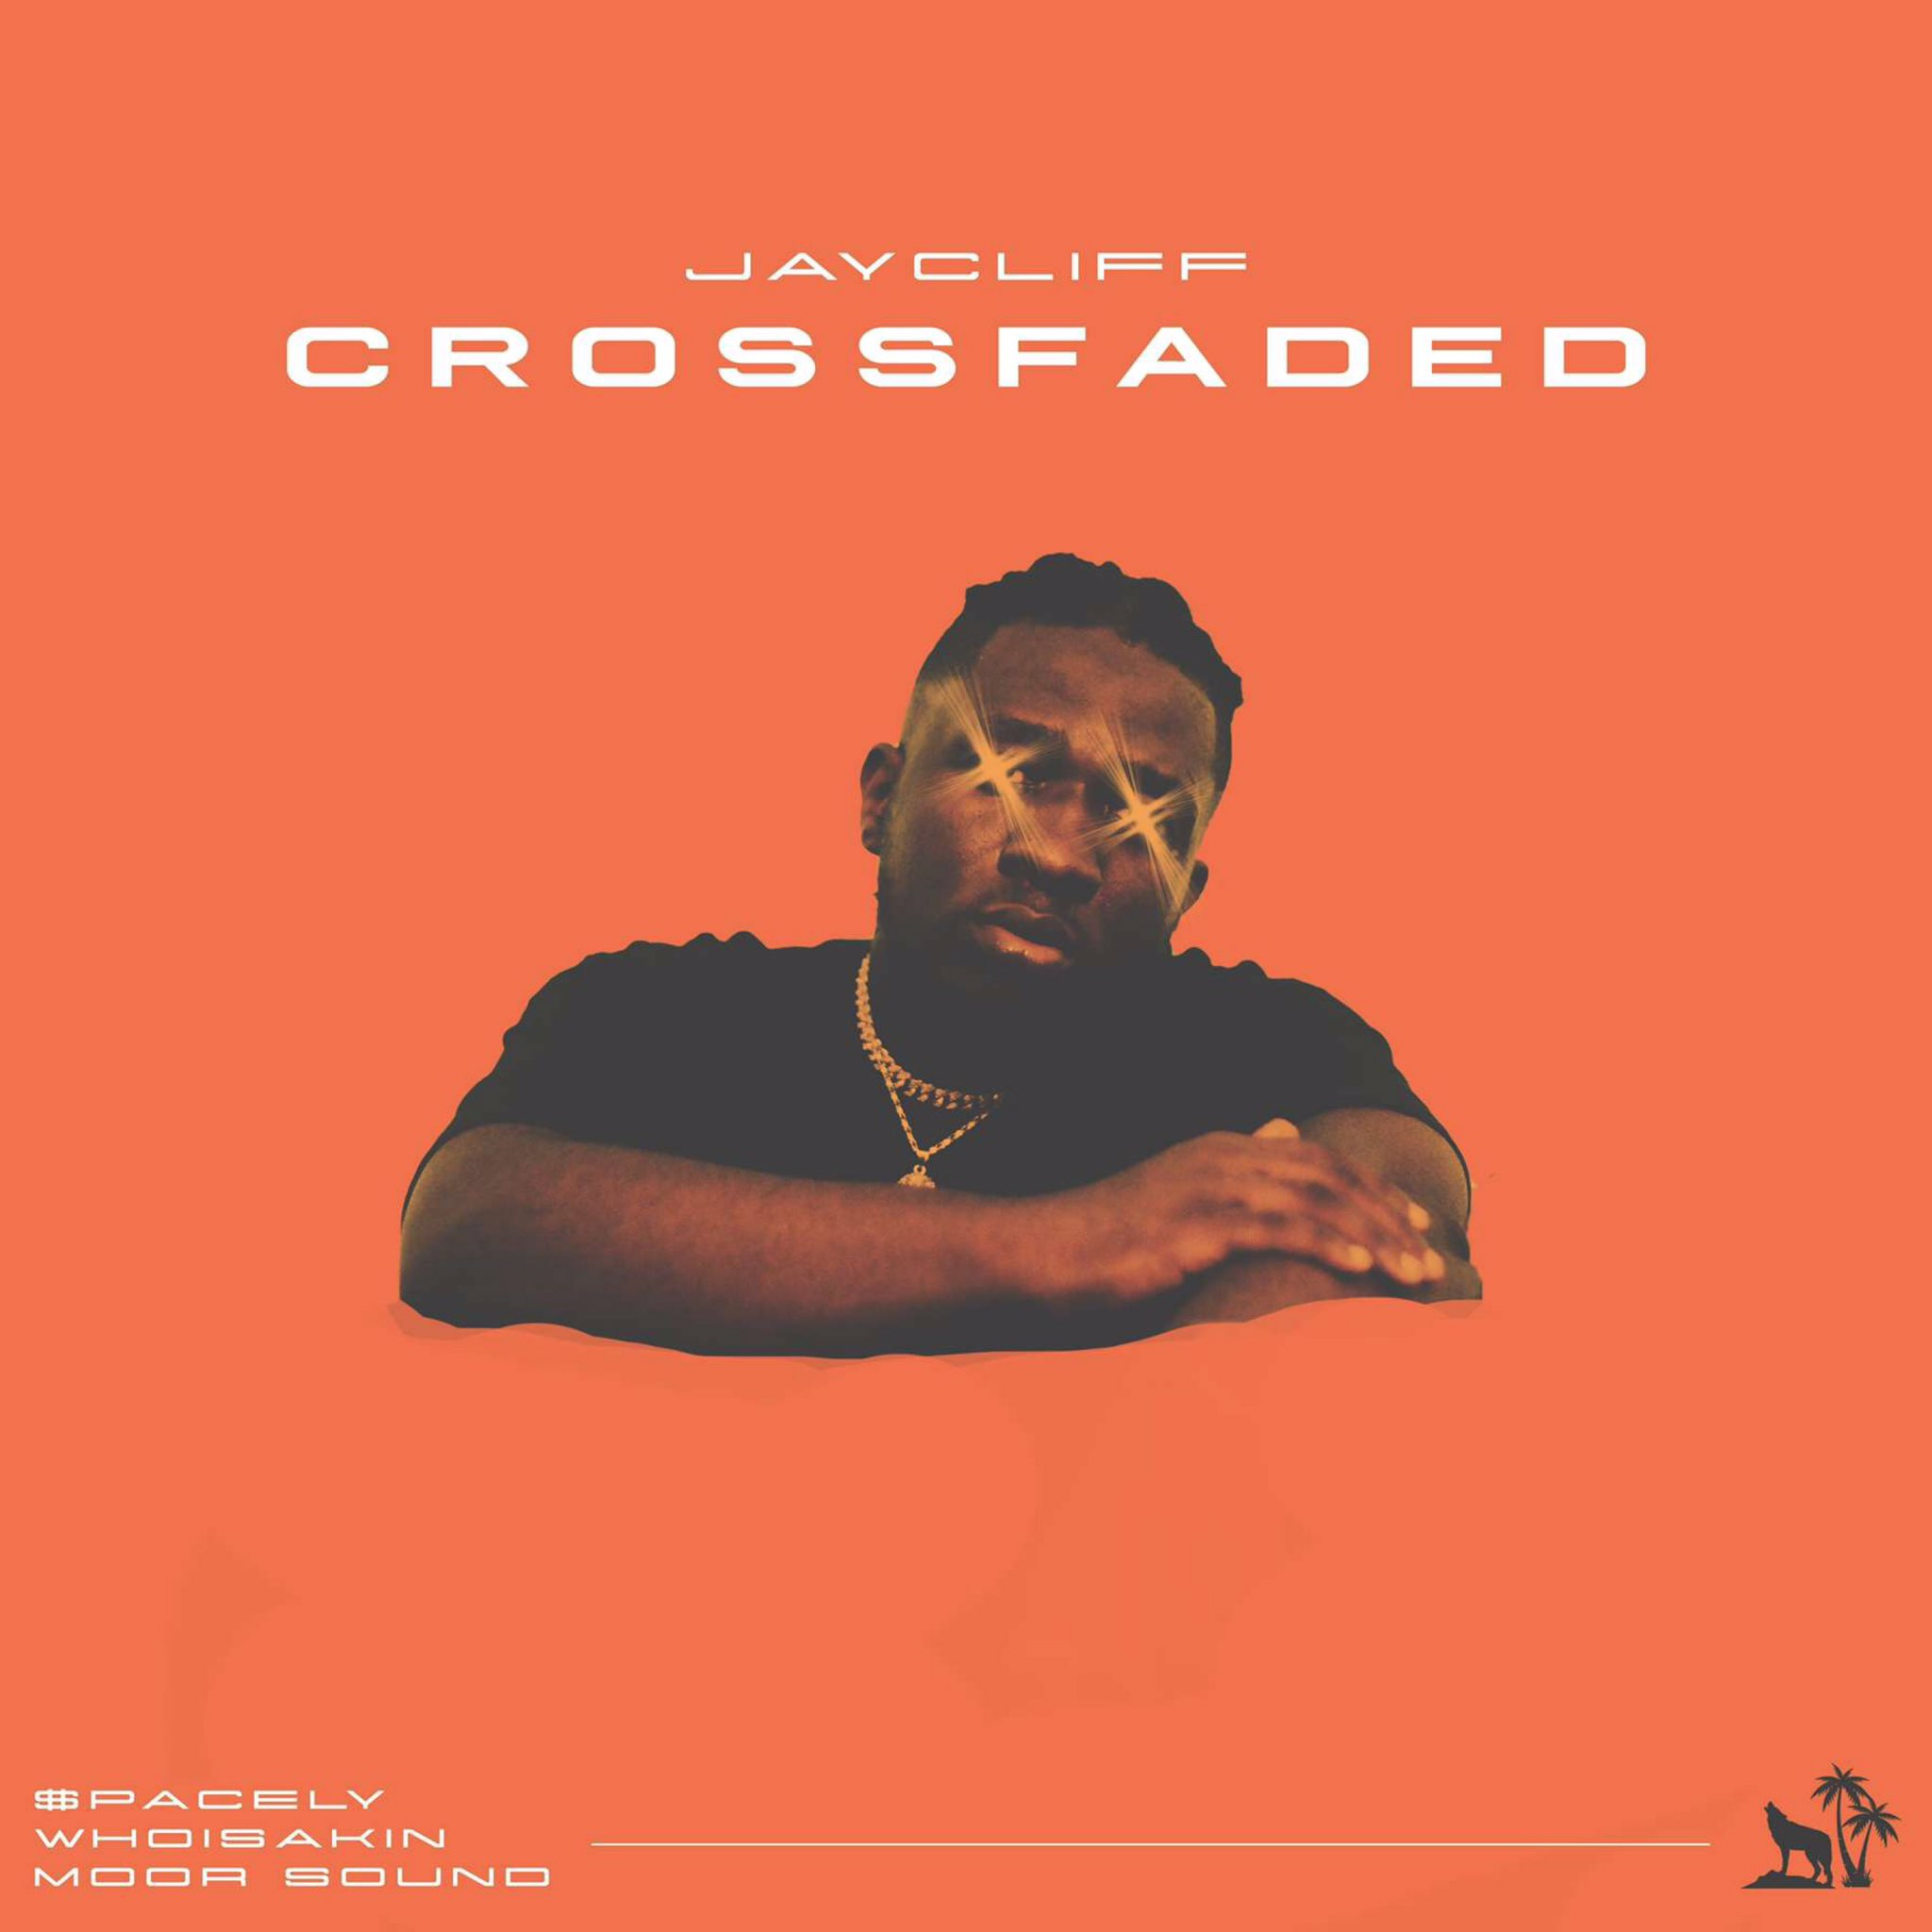 Jay Cliff – Crossfaded ft. $pacely, Whoisakin x Moor Sound